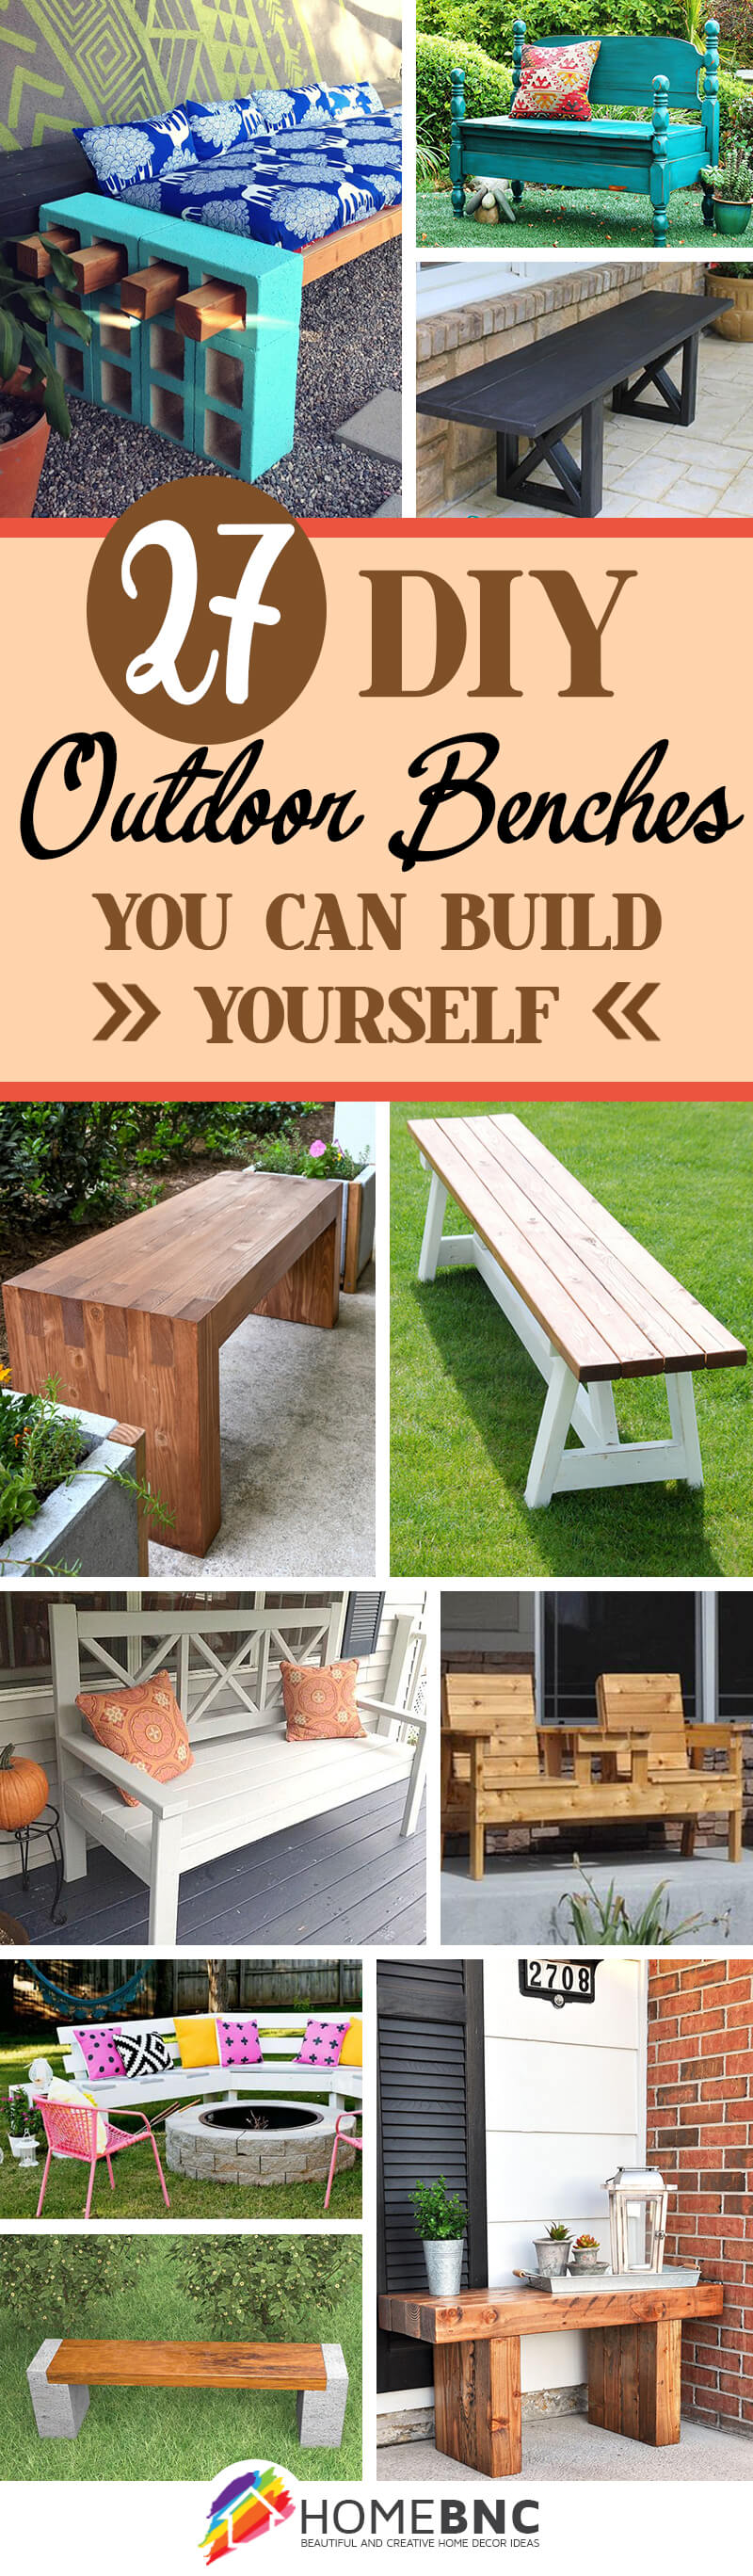 DIY Outdoor Bench Decor Ideas